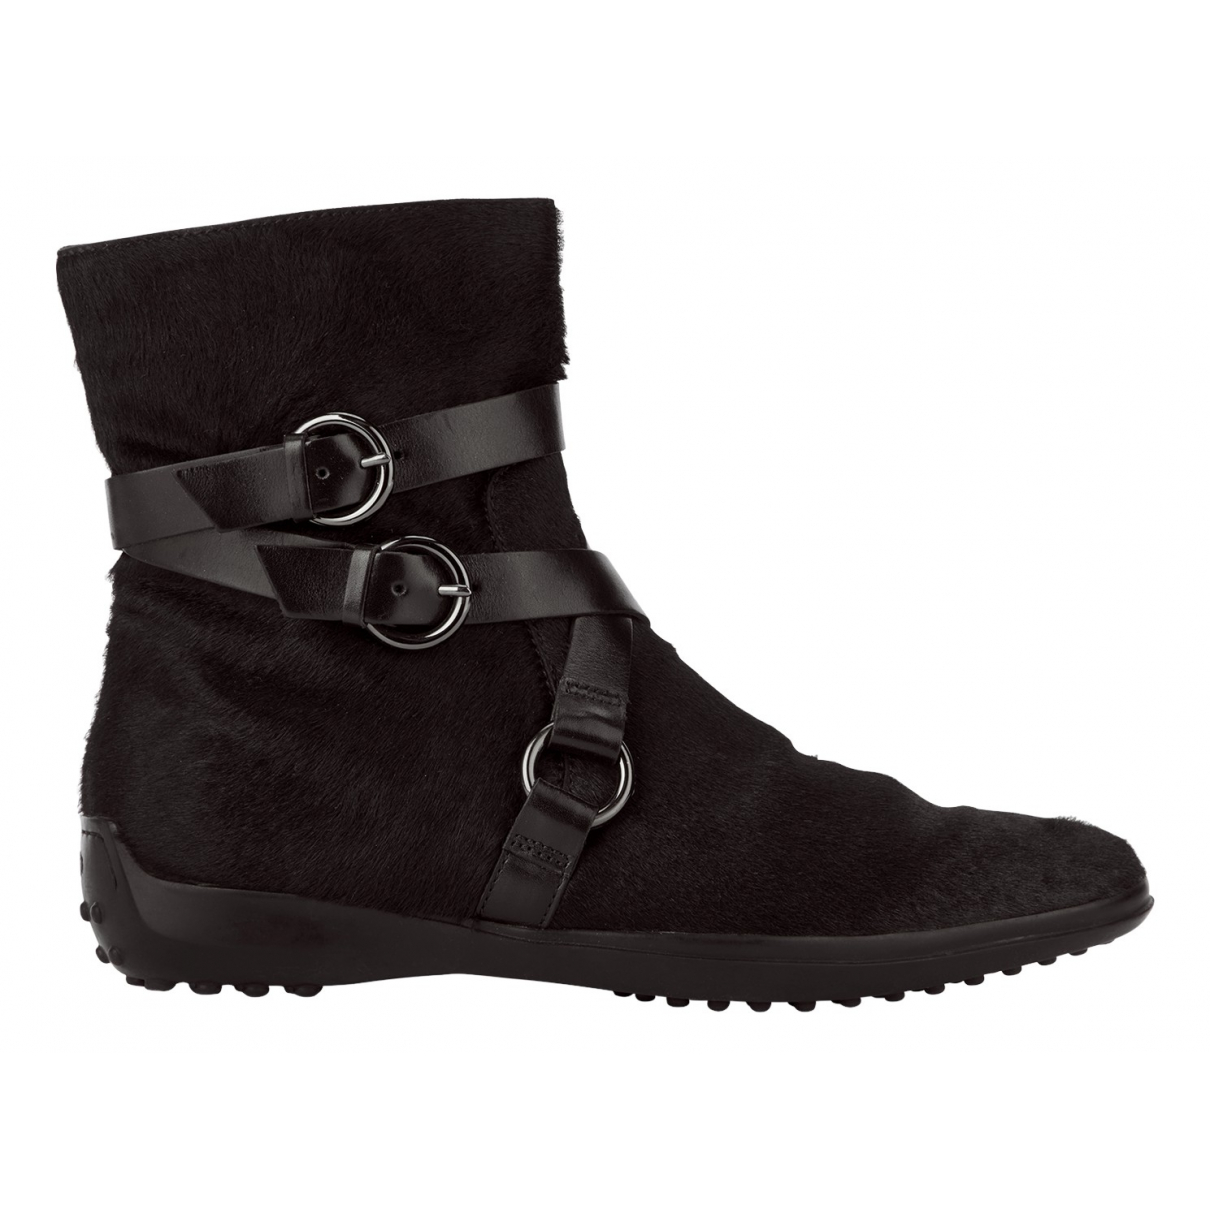 Tod's N Black Leather Ankle boots for Women 4 UK